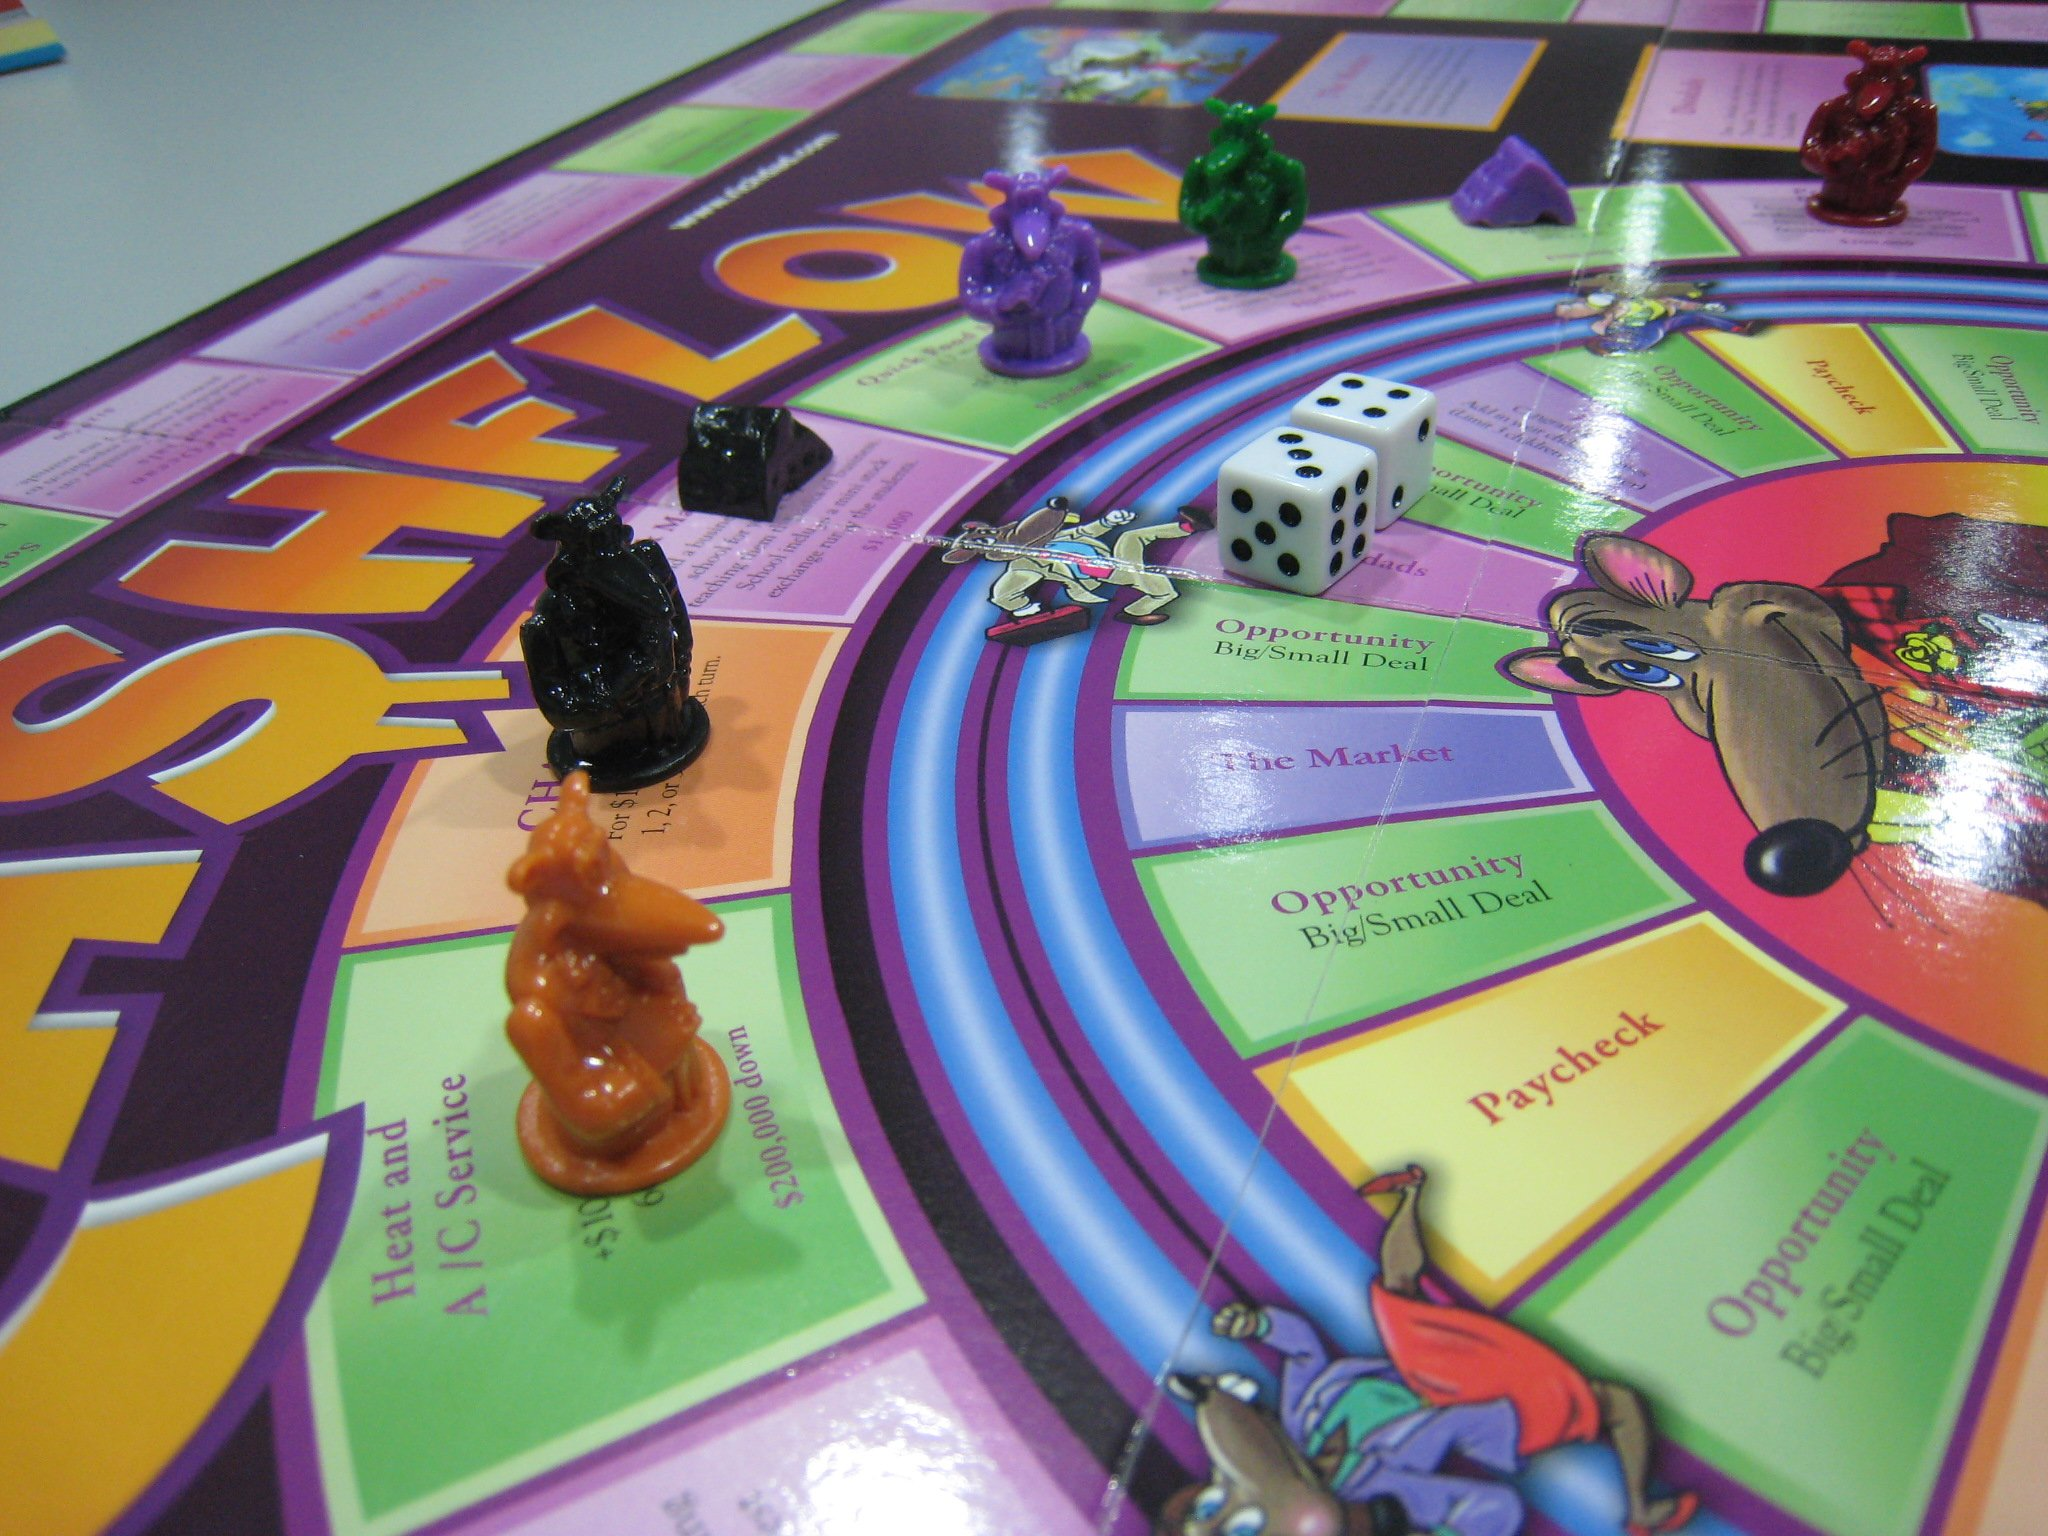 Rich Dad CashFlow 101 + 202 Board Game by The Rich Dad Company (Image #4)